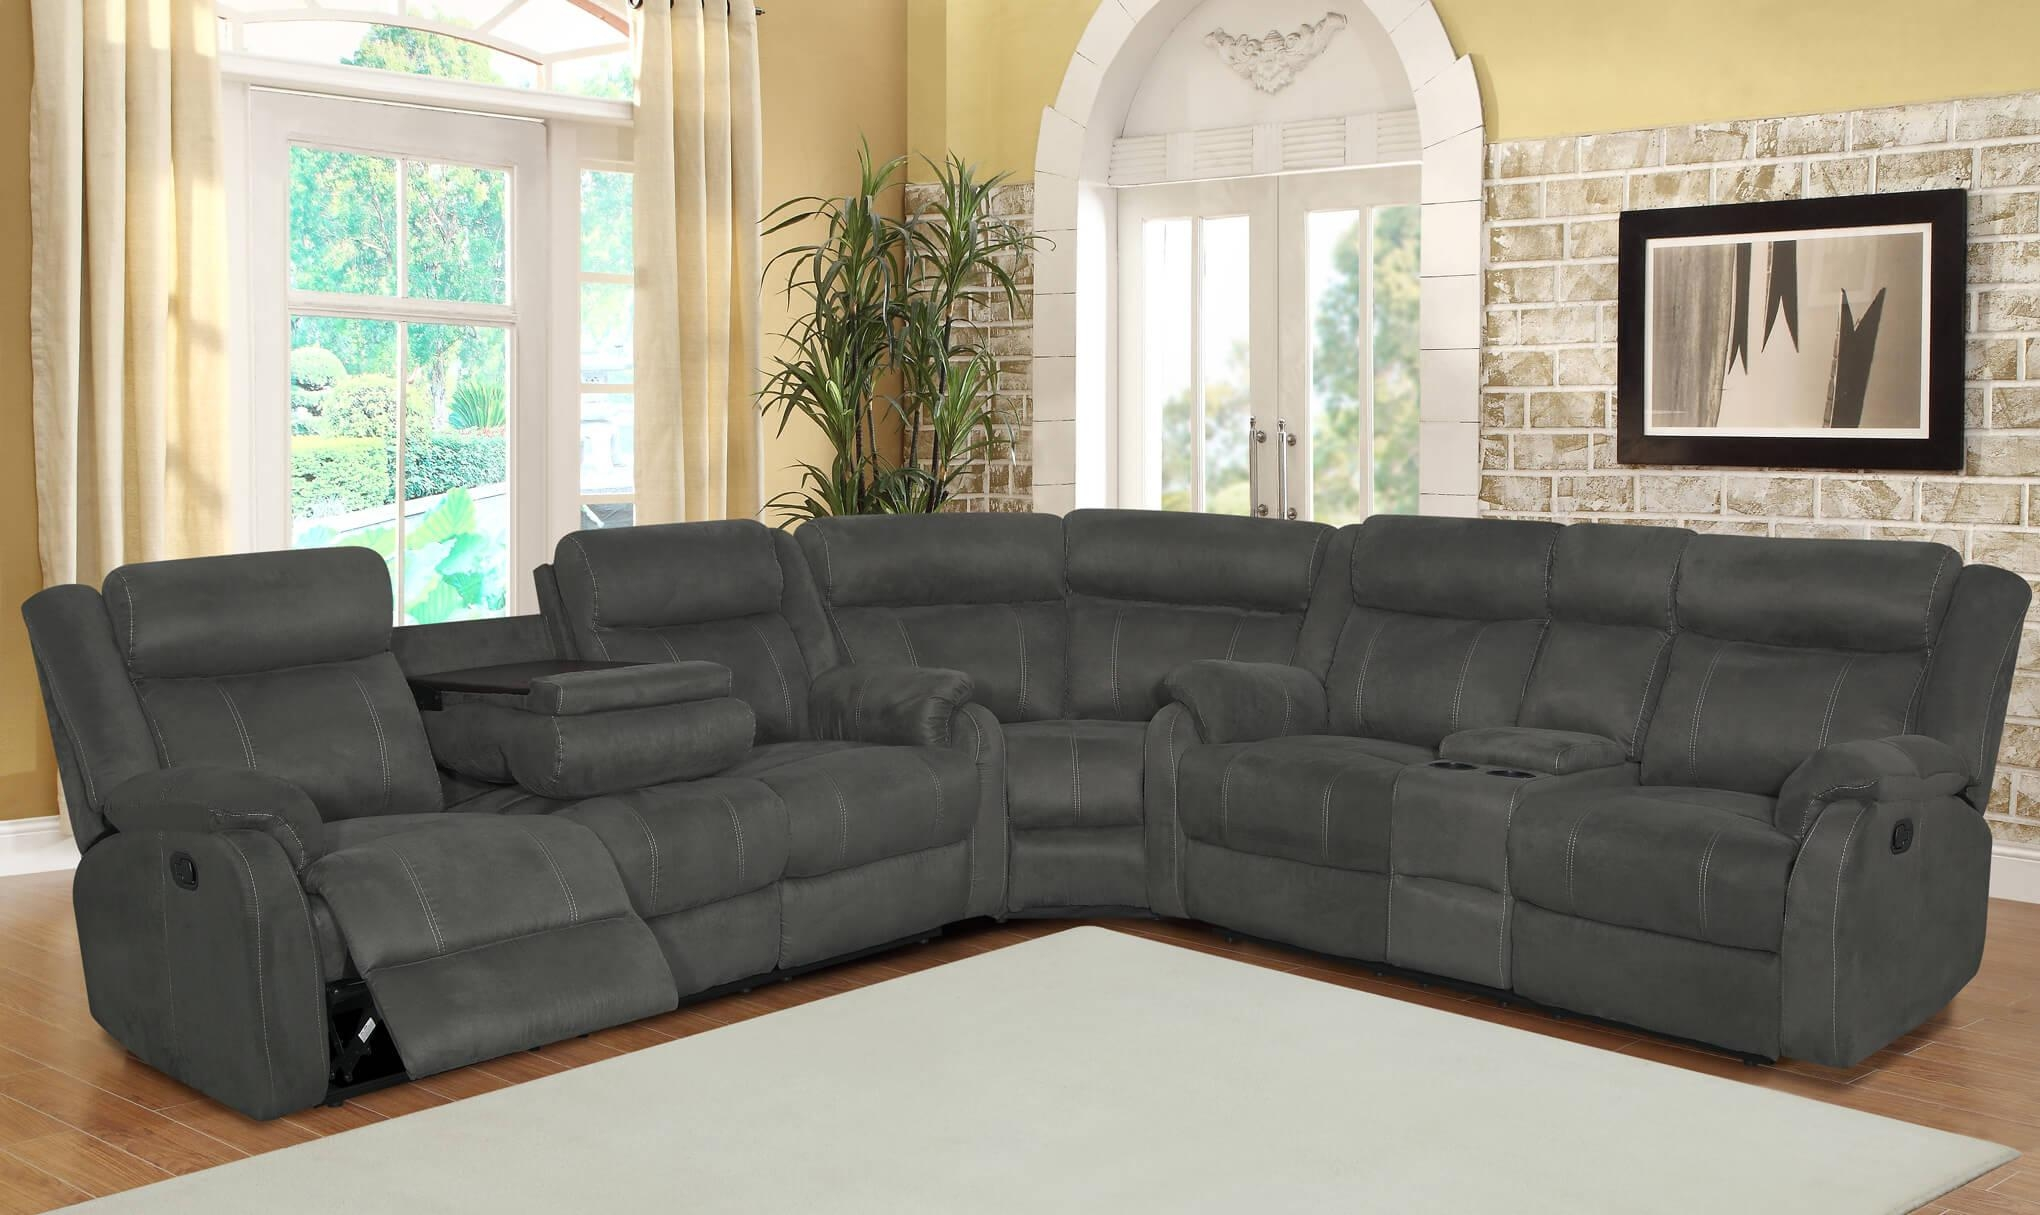 Sofas Center : Sofas Center Grey Leatherining Sofa Setgray Gray For Charcoal Grey Sofas (View 6 of 20)